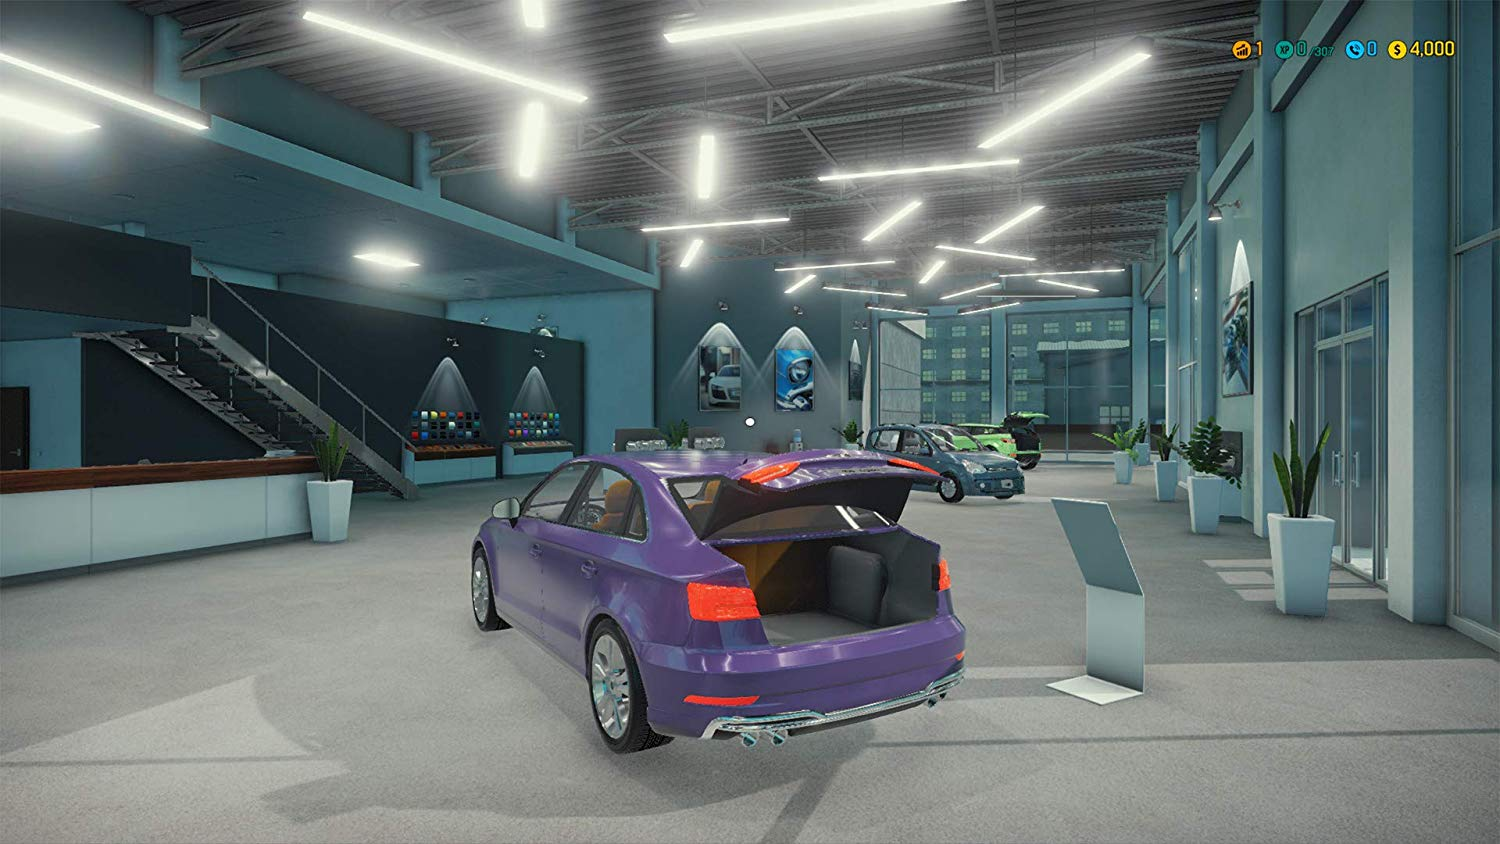 Car Mechanic Simulator coming to PS4 & Xbox One in June - Team VVV